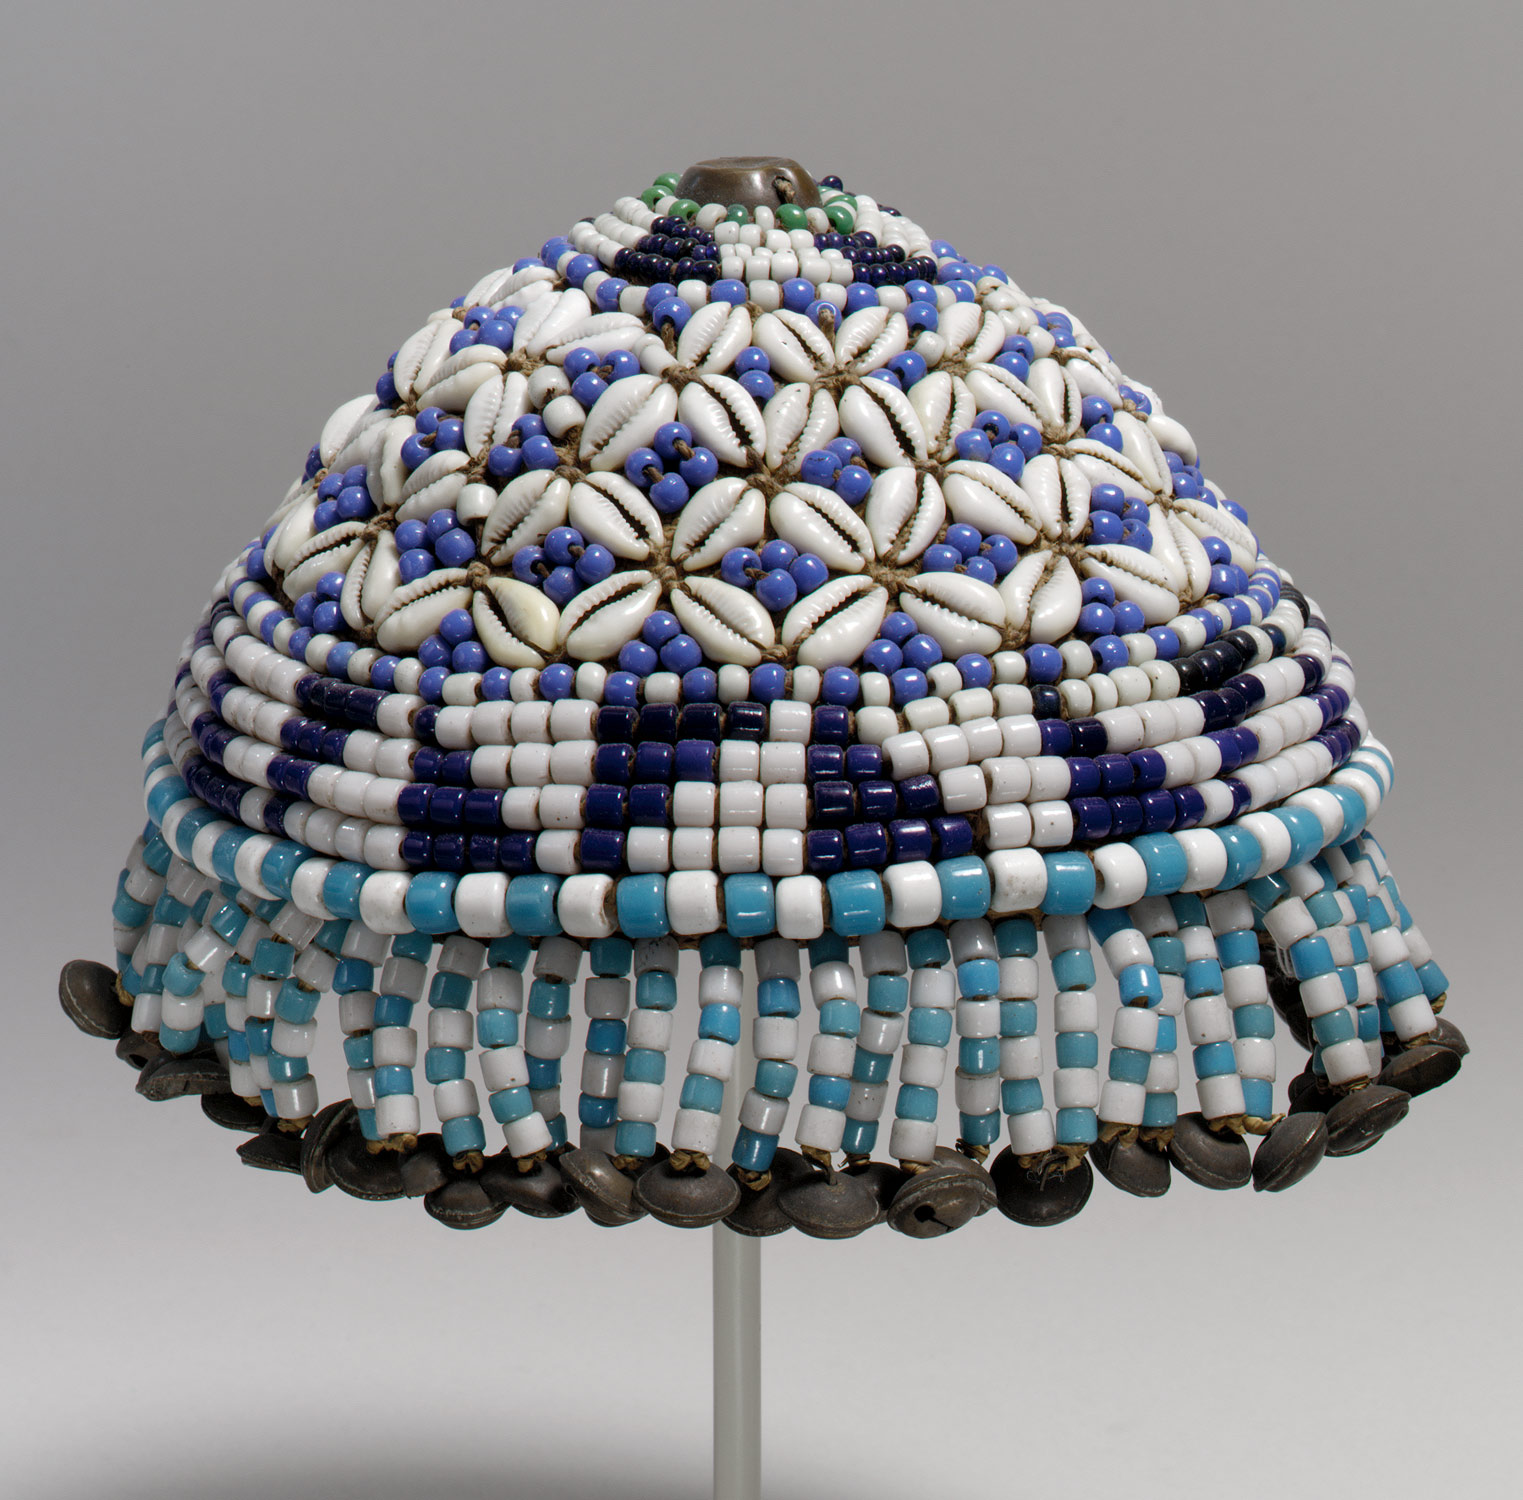 Prestige Cap from the Metropolitan Museum of Art with blue and white beads